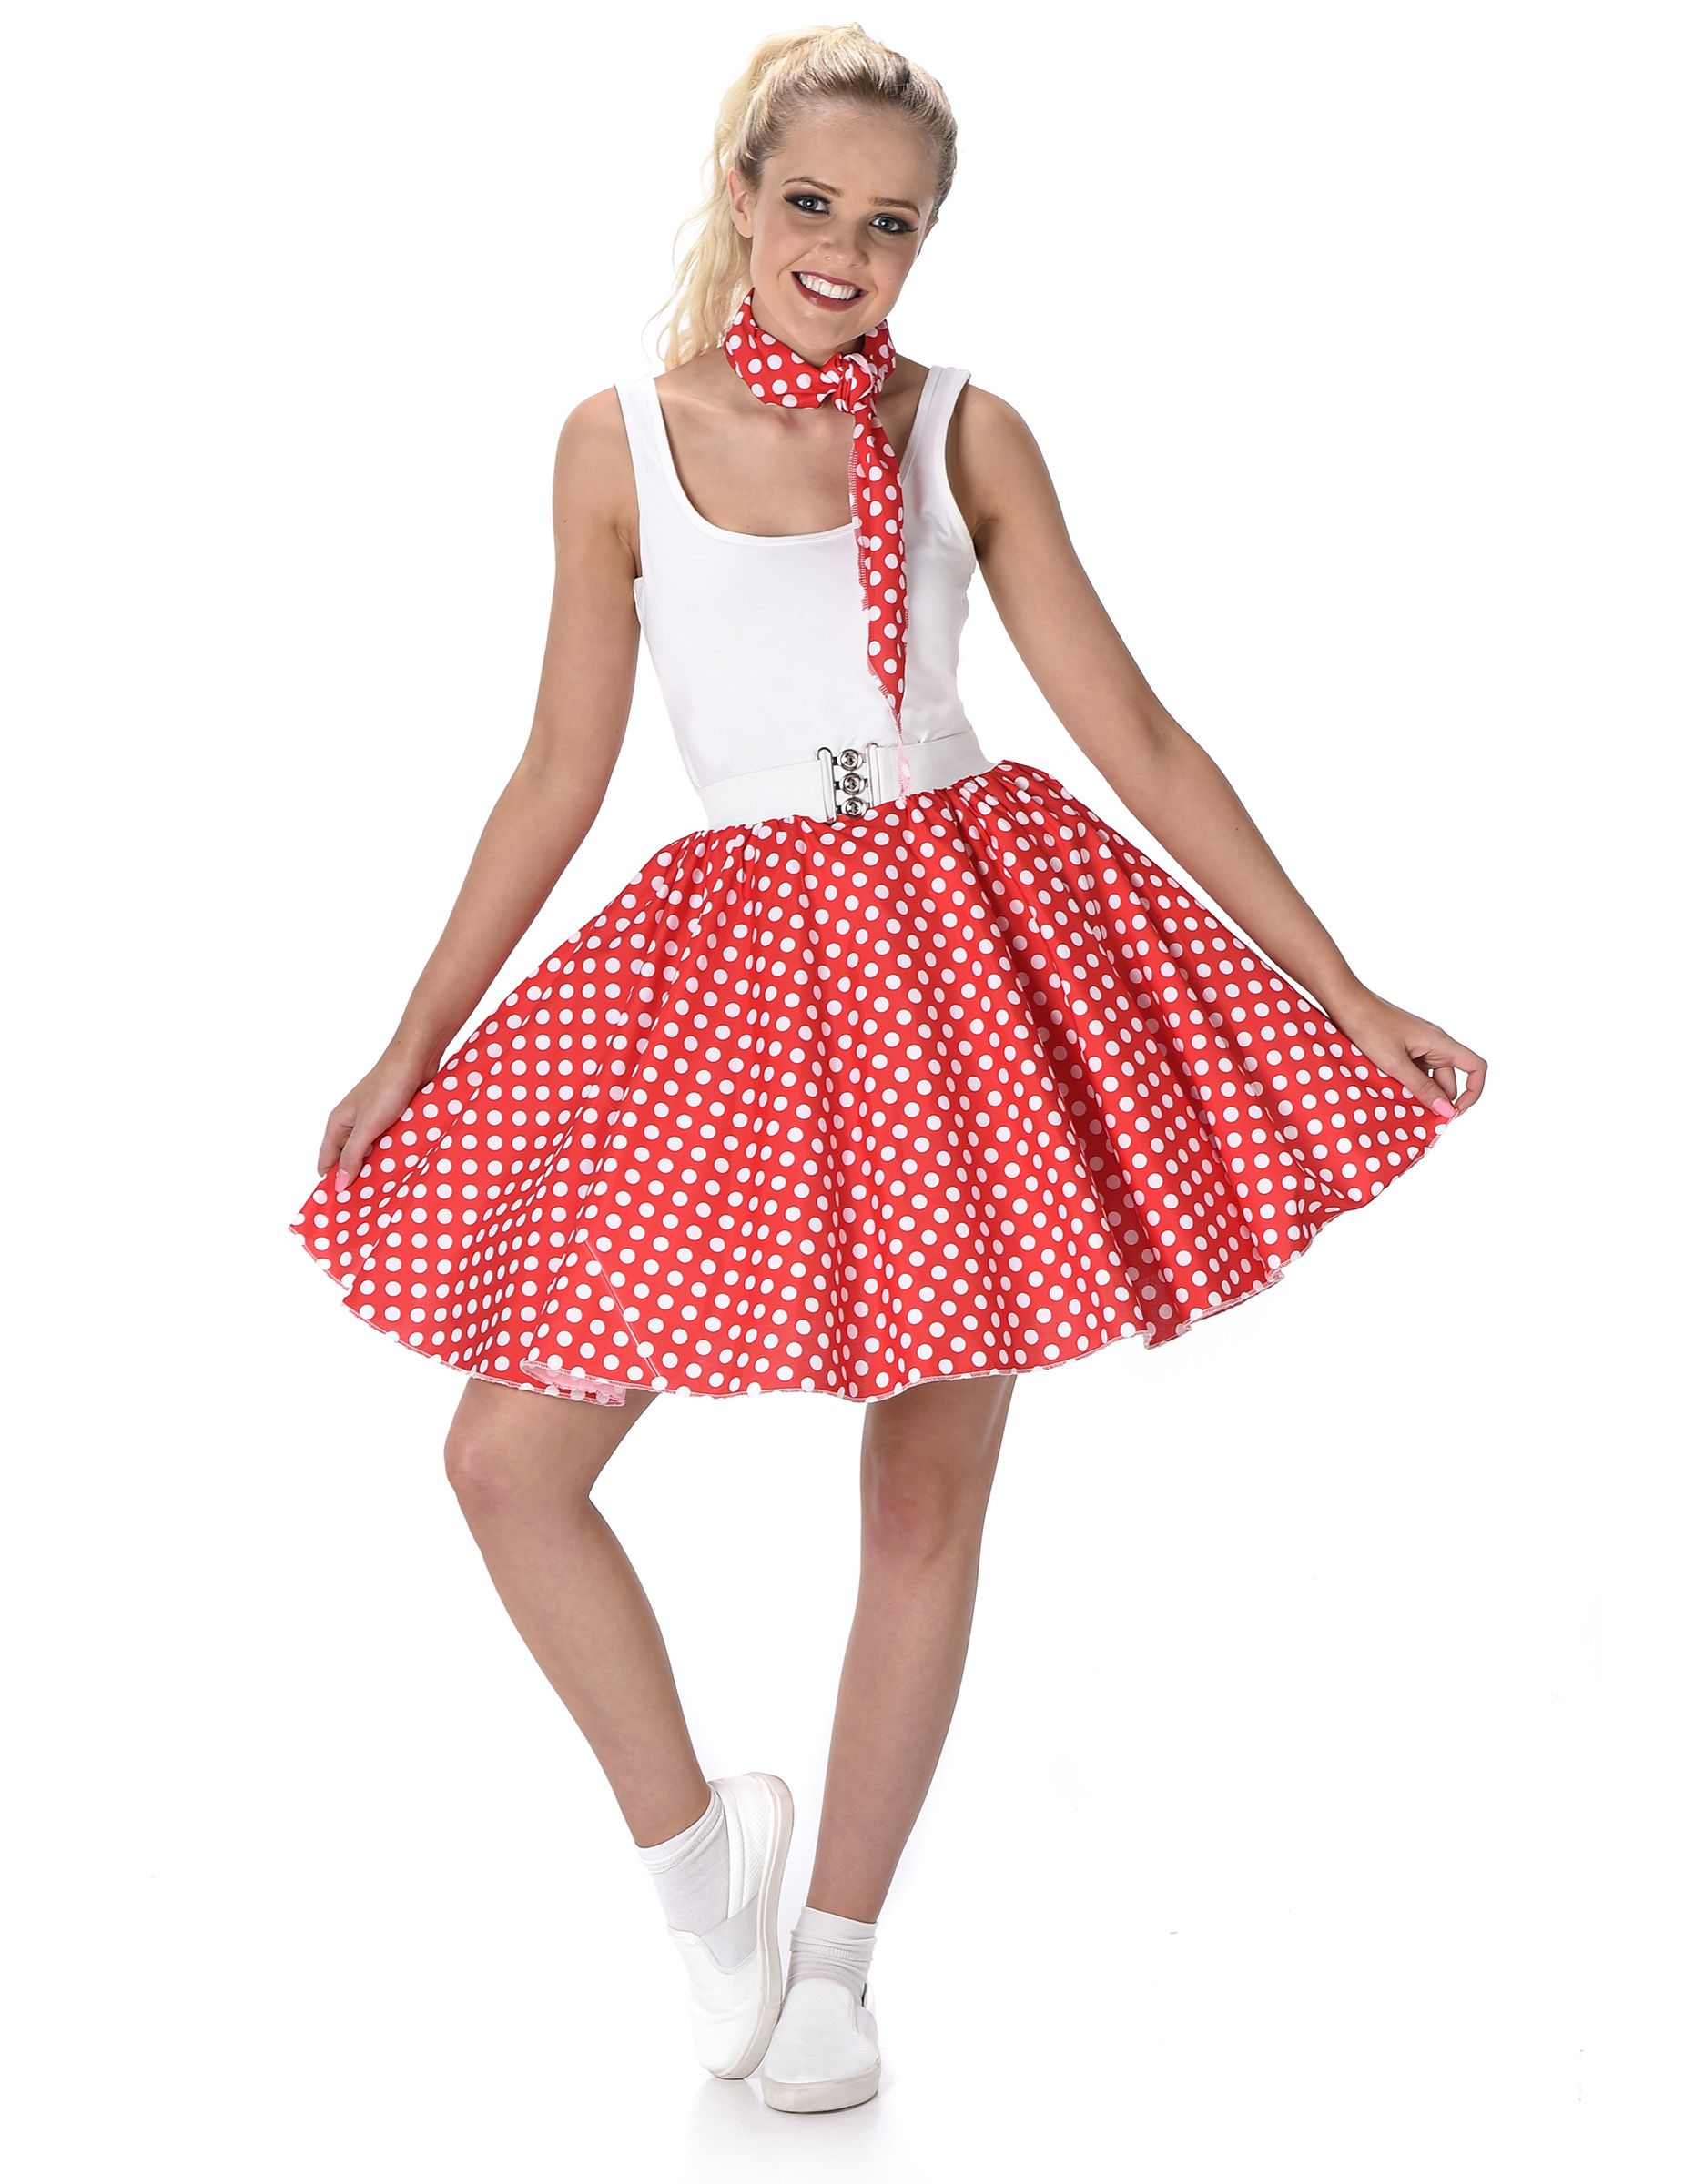 55f1972acbf7 grease ou minnie Déguisement Femme Facile, Deguisement Grease, Costume Années  50, Deguisement Simple